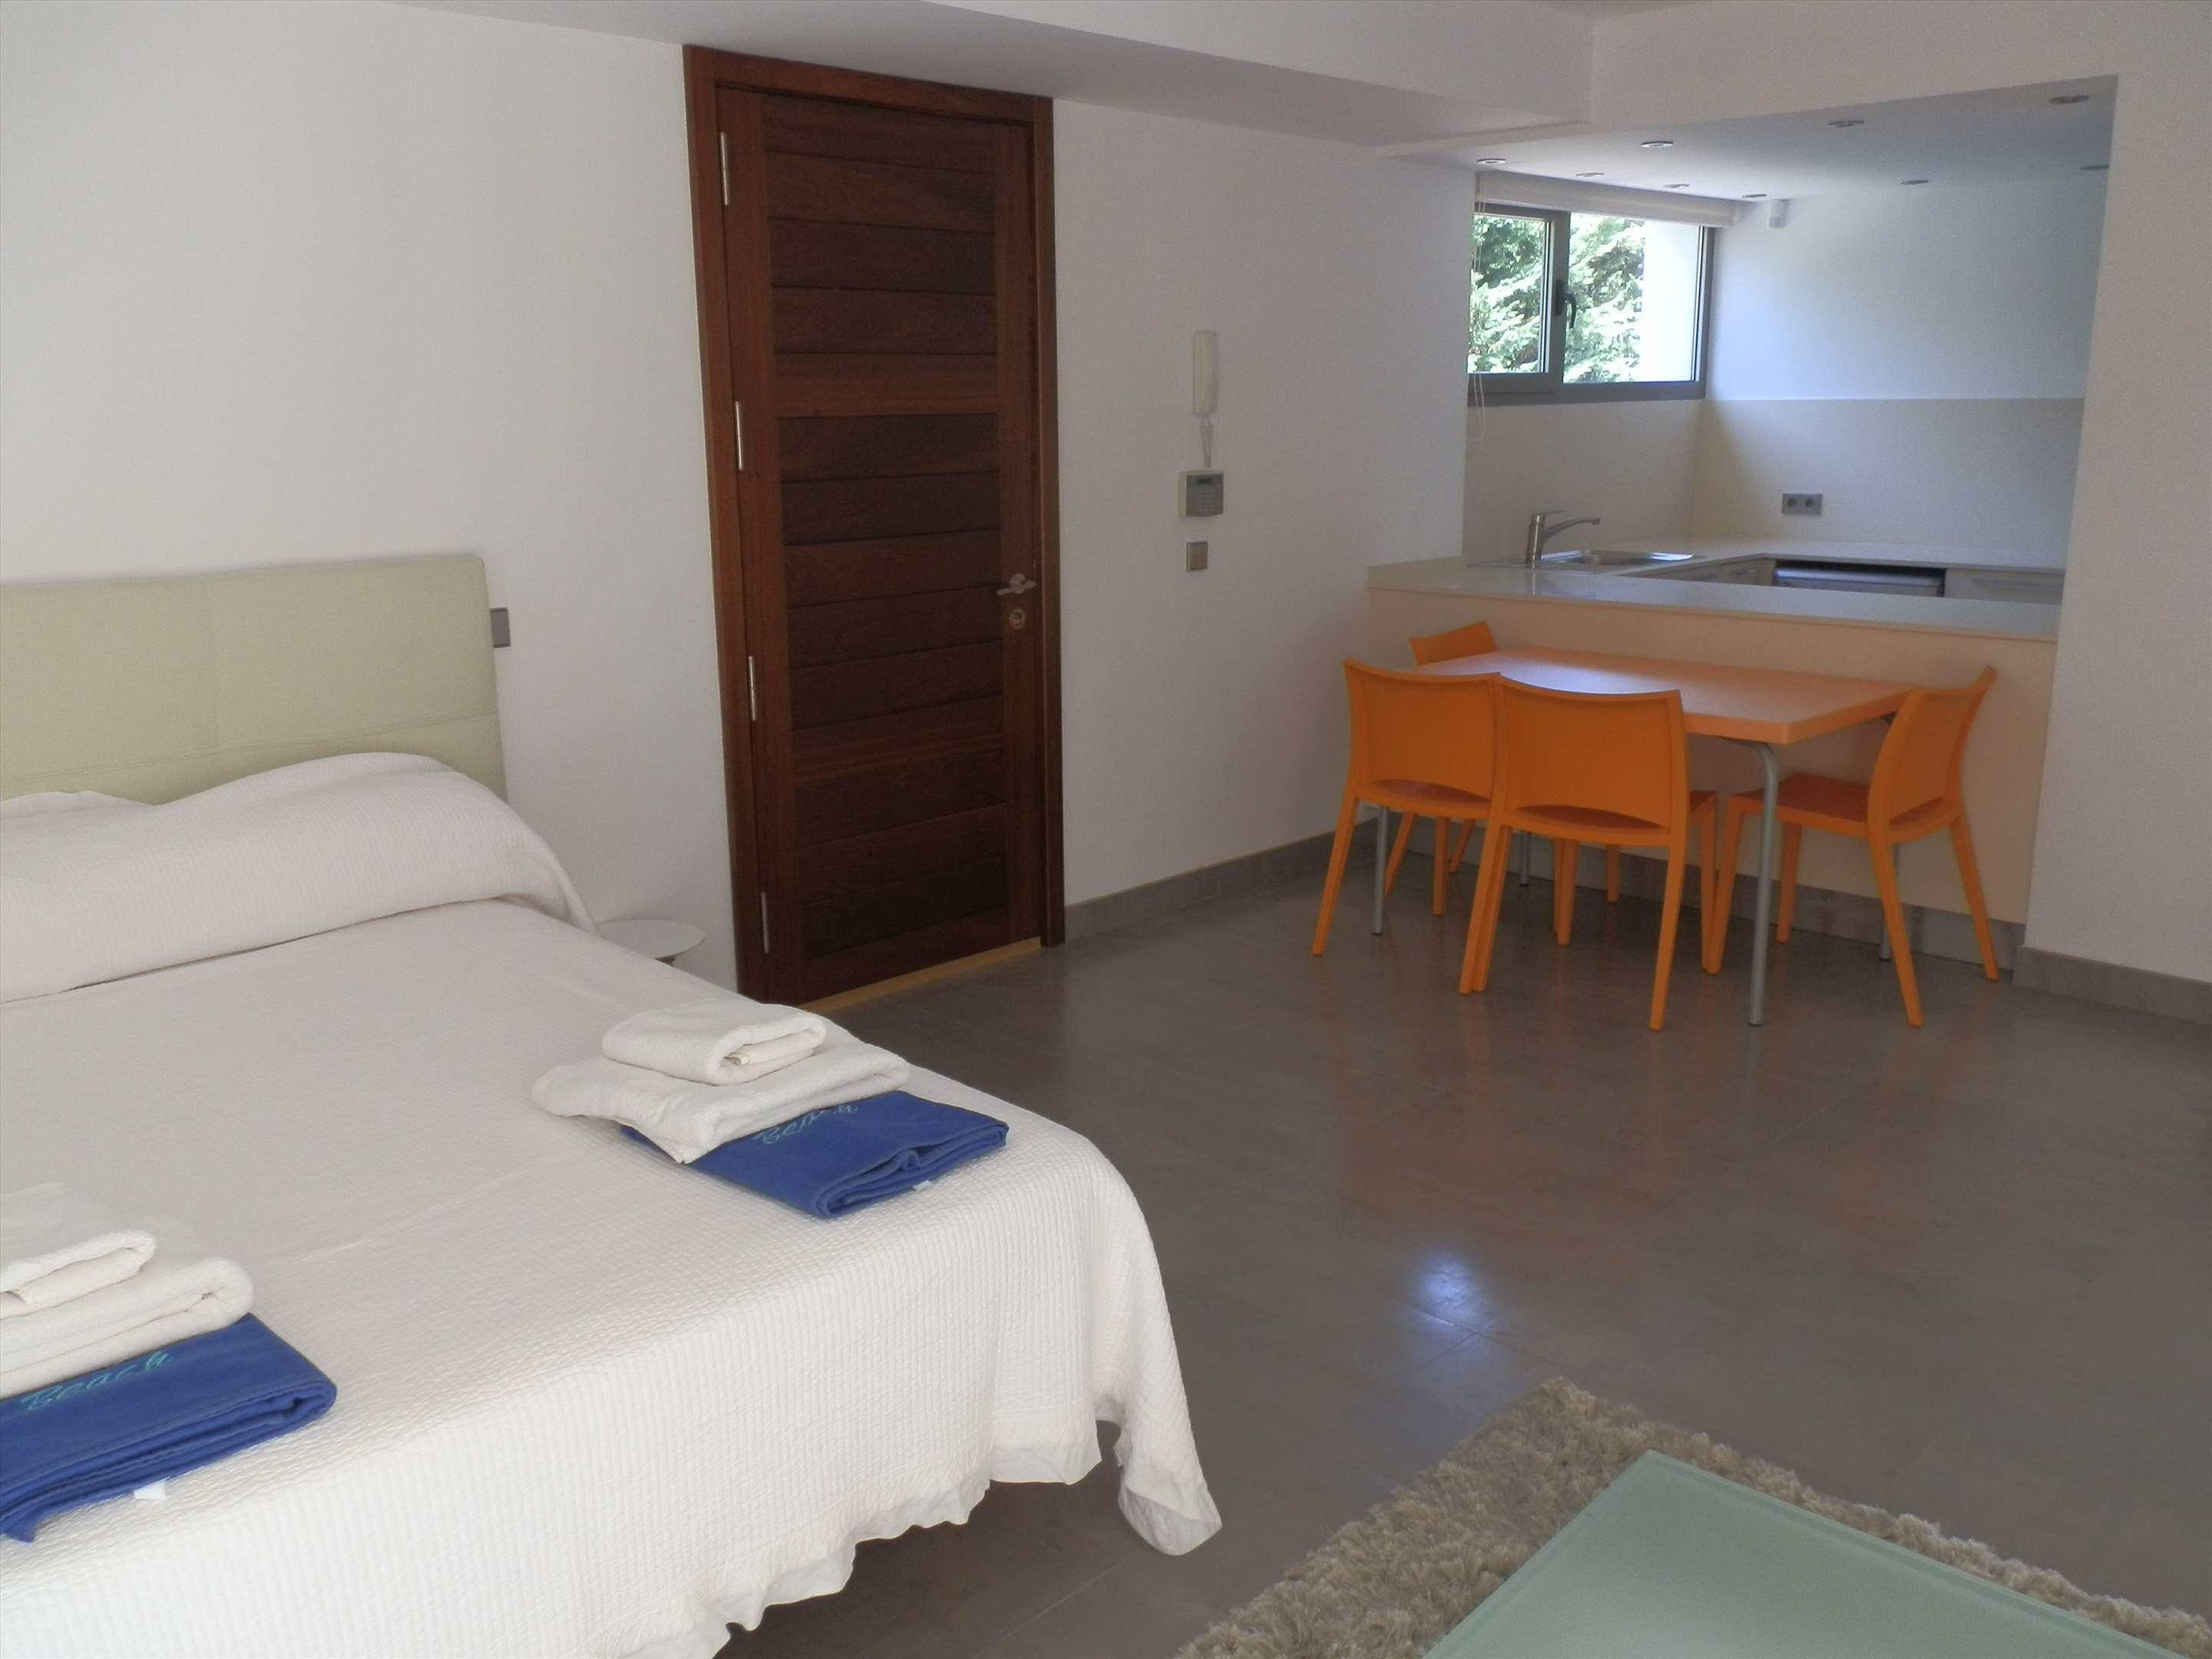 Casa Pitiusa, 5 Bedroom rate, 5 bedroom villa in Mahon, San Luis & South East, Menorca Photo #23